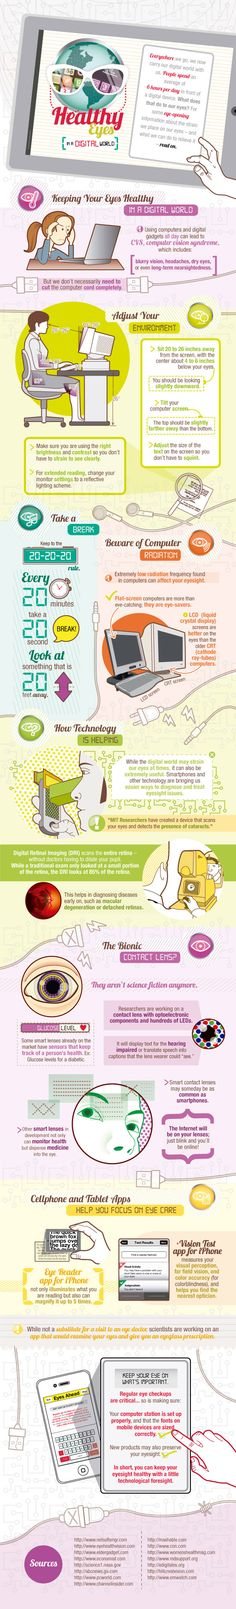 Infographic: A Guide To Having Healthy Eyes In A Digital World - Constant use of computers and other electronic devices could cause 'Computer Vision Syndrome': blurry vision, headaches, dry eyes and possible long-term near-sightedness. Many interesting fa Computer Vision, Health And Nutrition, Health And Wellness, Health Tips, Health Benefits, Sistema Visual, Eye Facts, Healthy Eyes, Bulletins